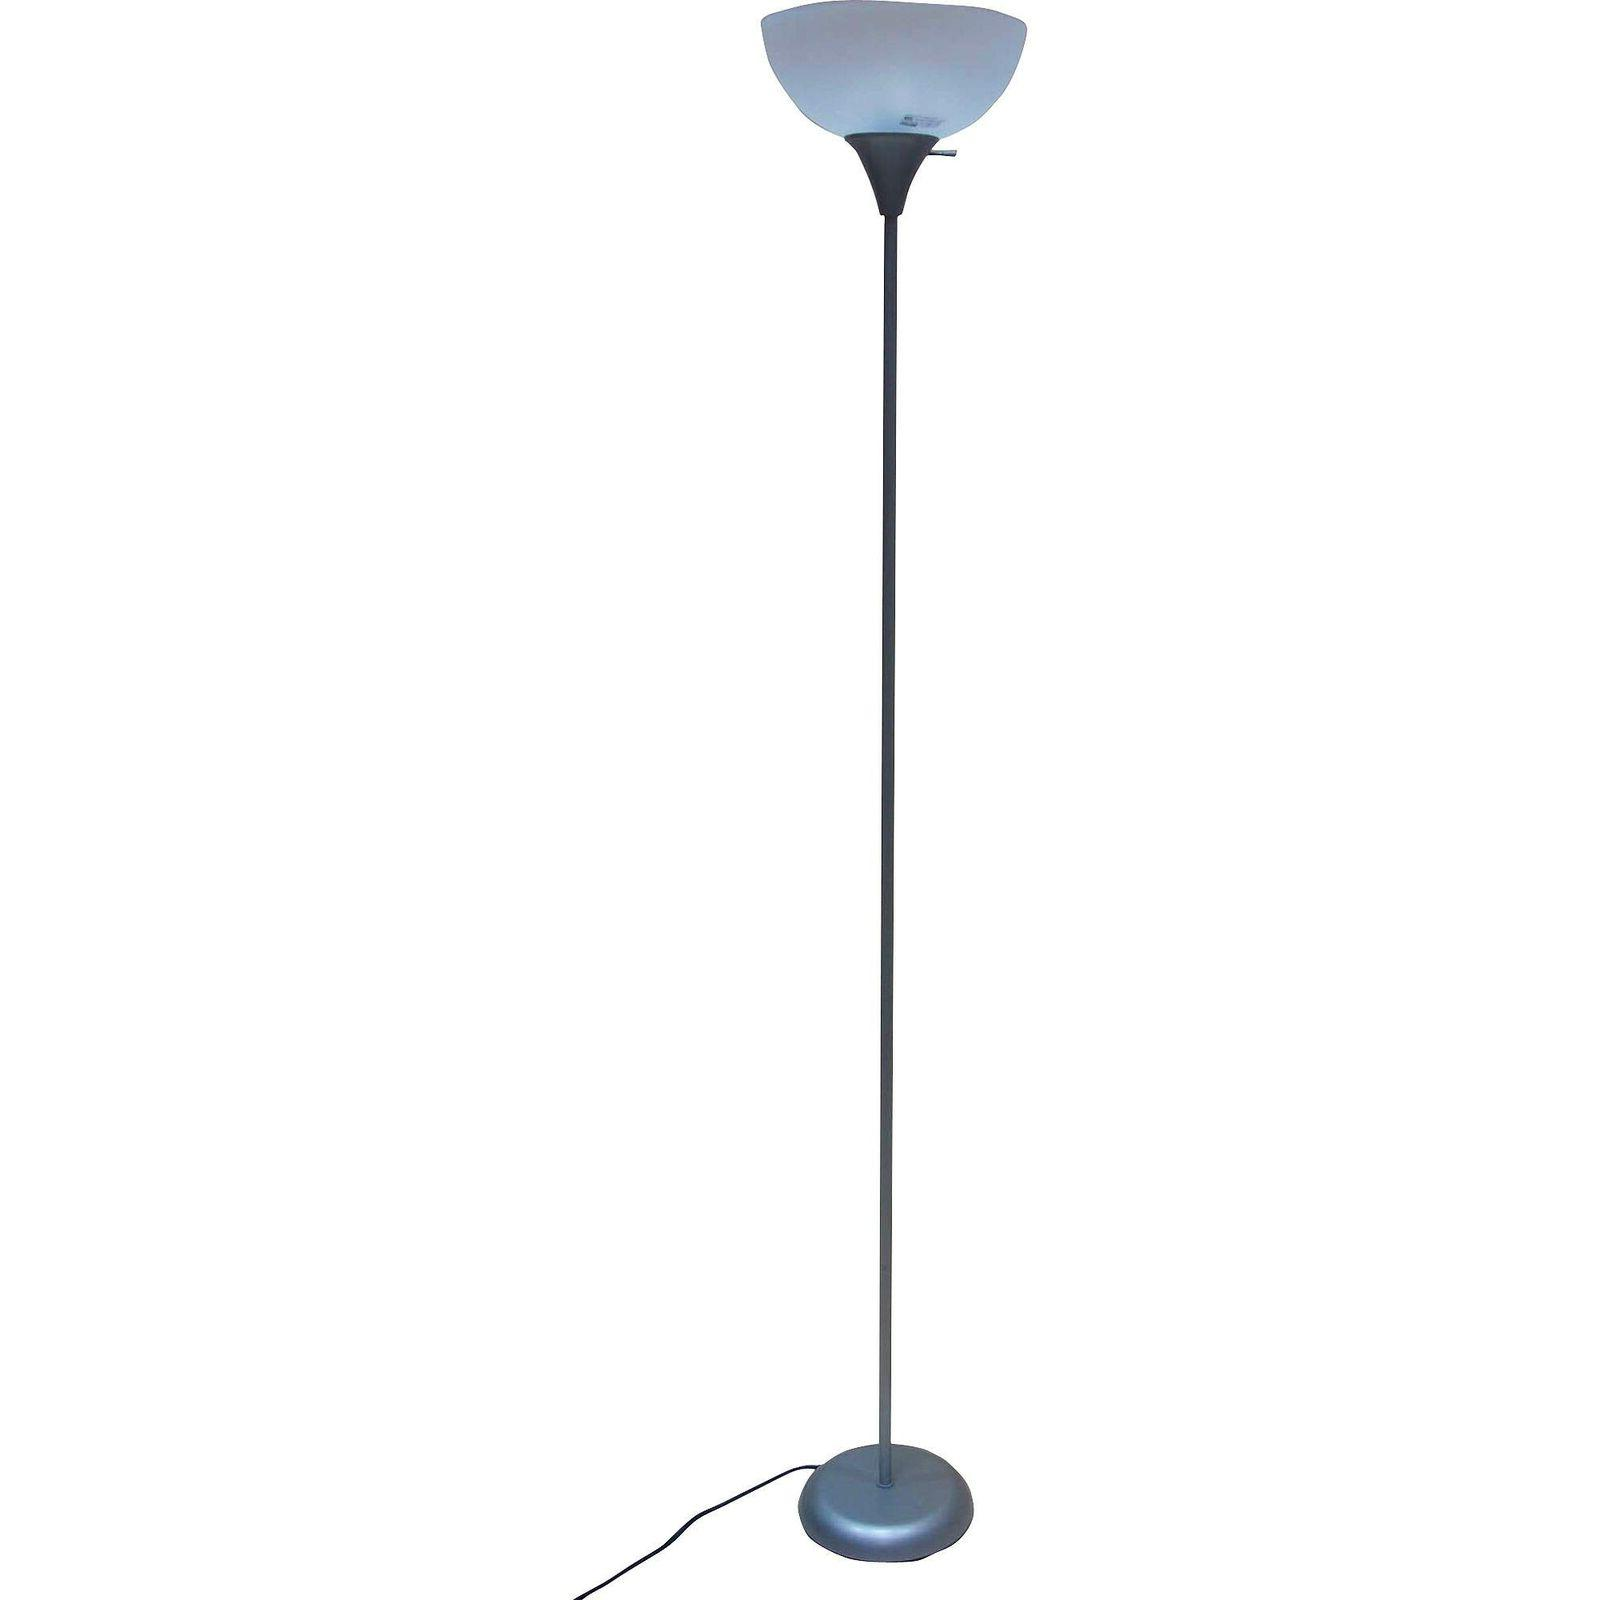 71 floor lamp 3 way rotary lighting